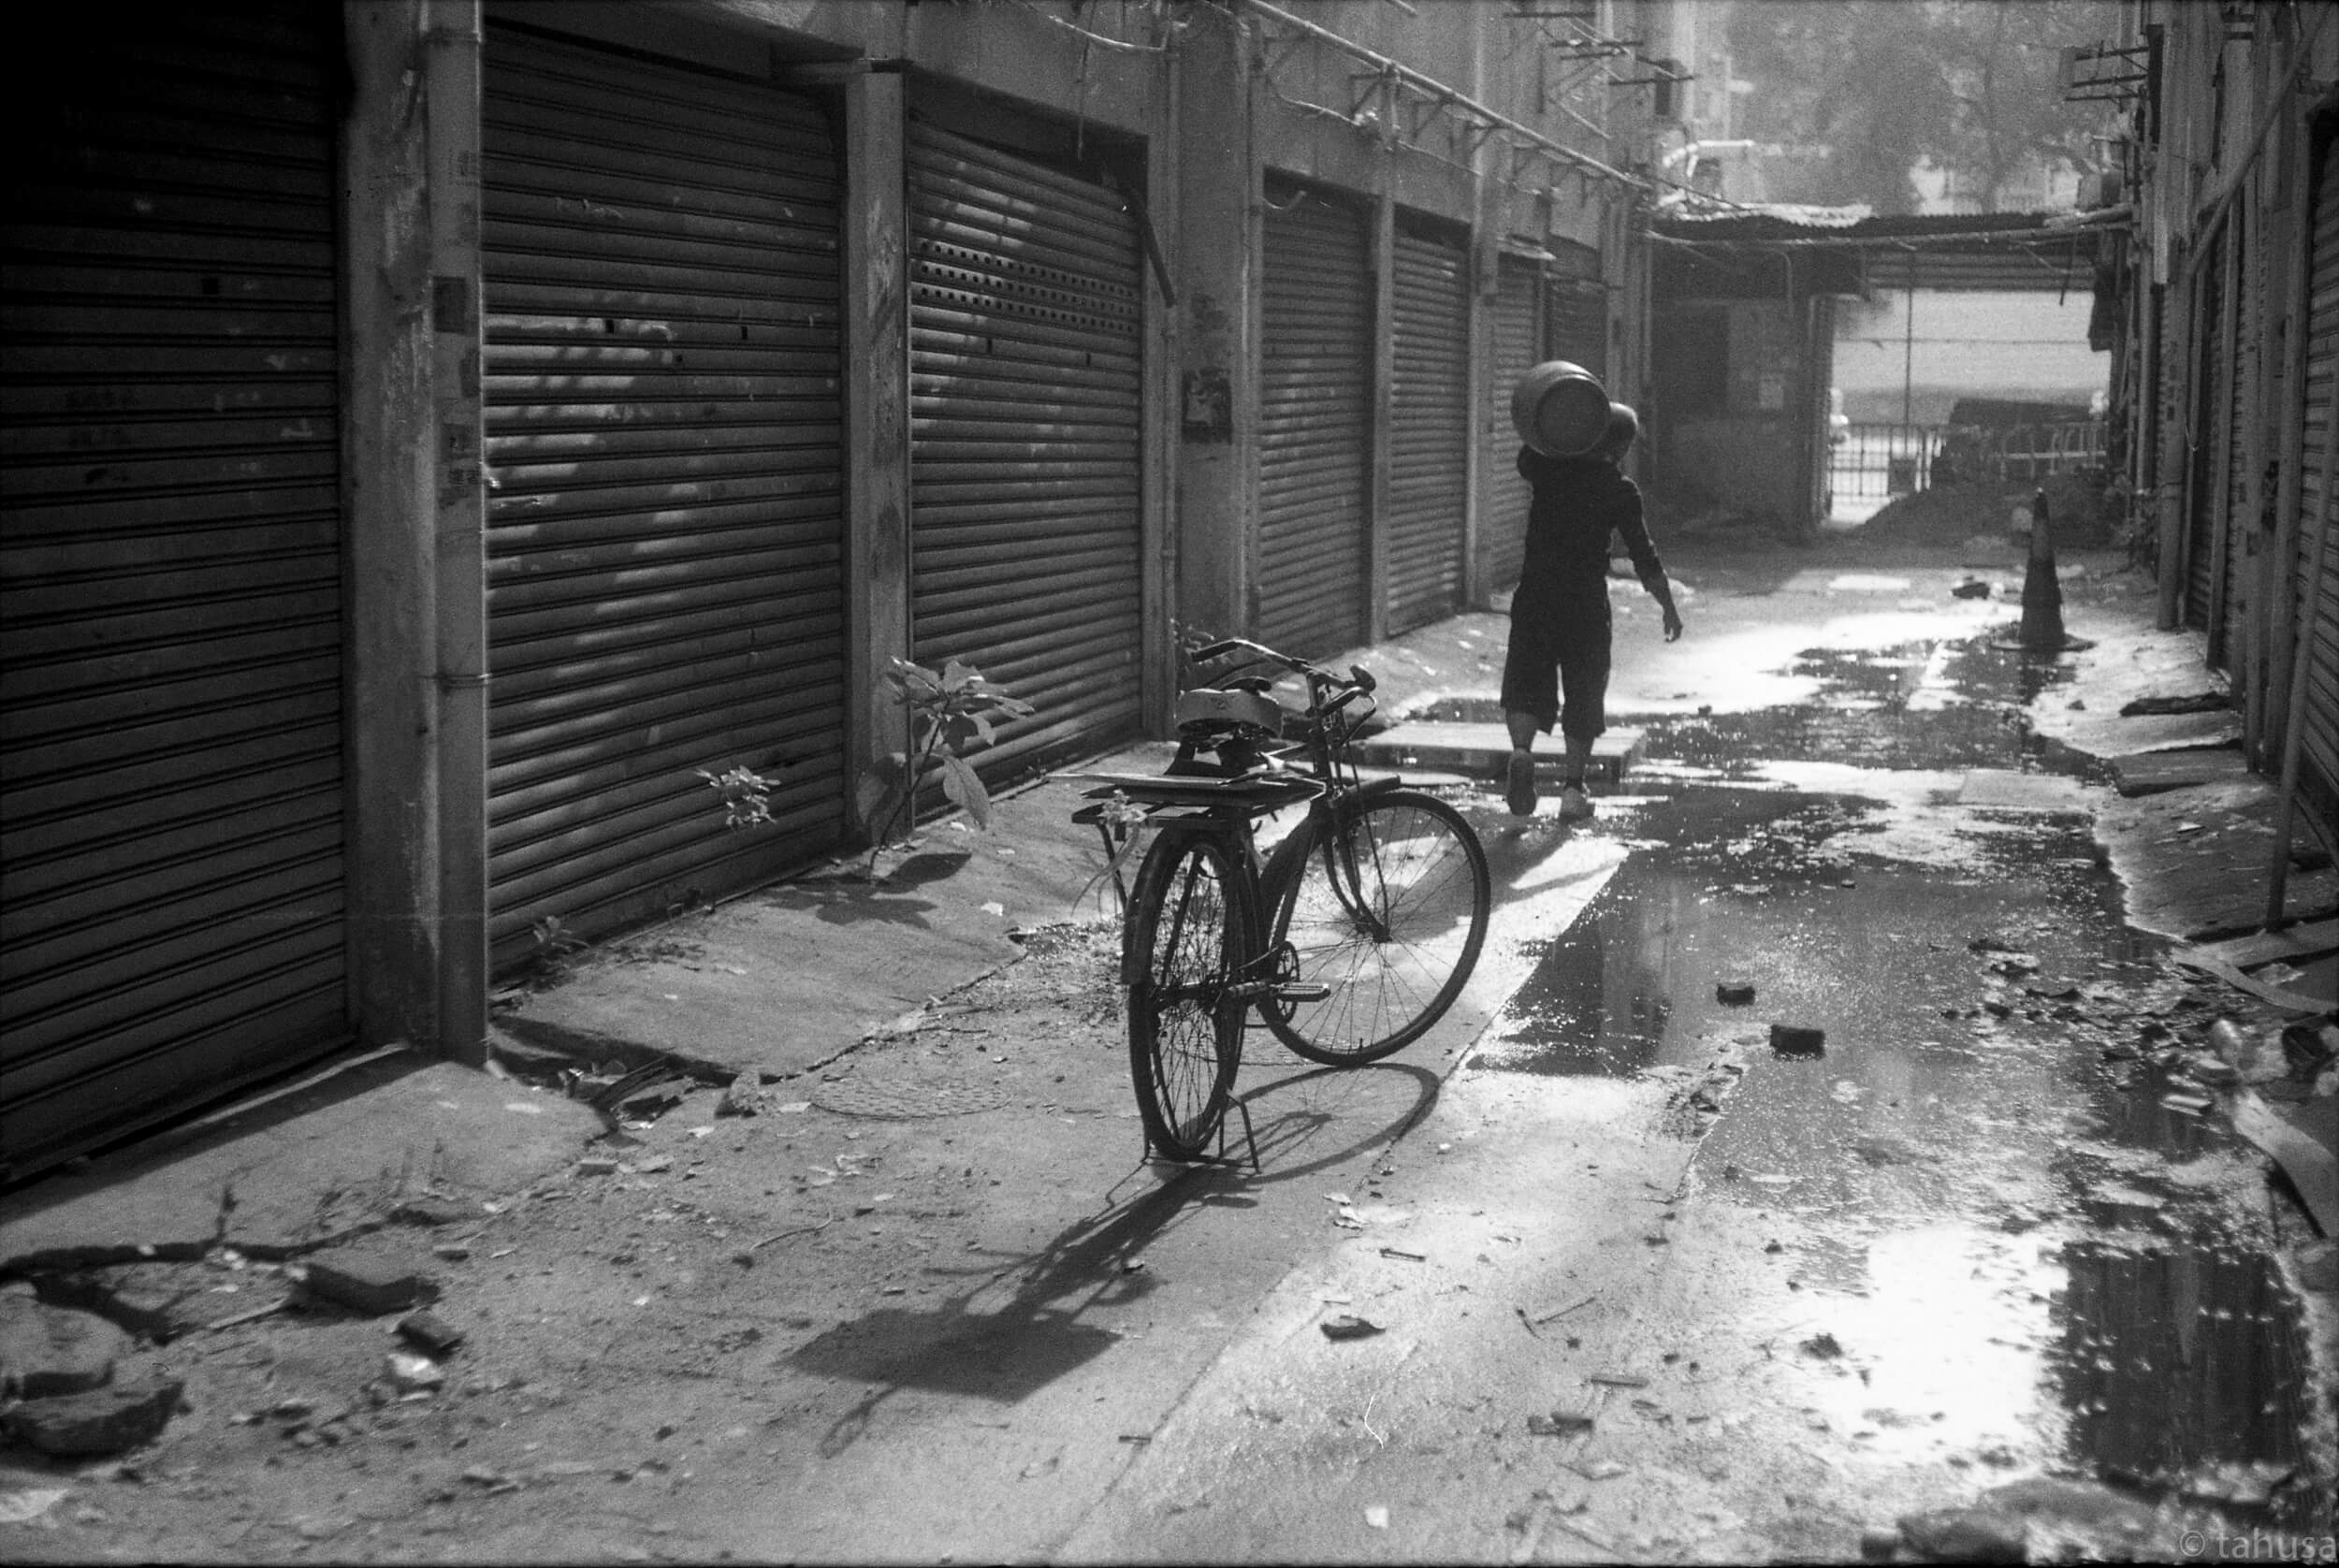 Man-delivering-canned-LPG-gas-to-household-Rigid-summicron-50mm-f2-50-leica-Black-and-white-BW-B&W-film-analog-snap-snapshot-Kentmere-Film-DDX-Ilford-Hong-Kong-Minorities-Slum